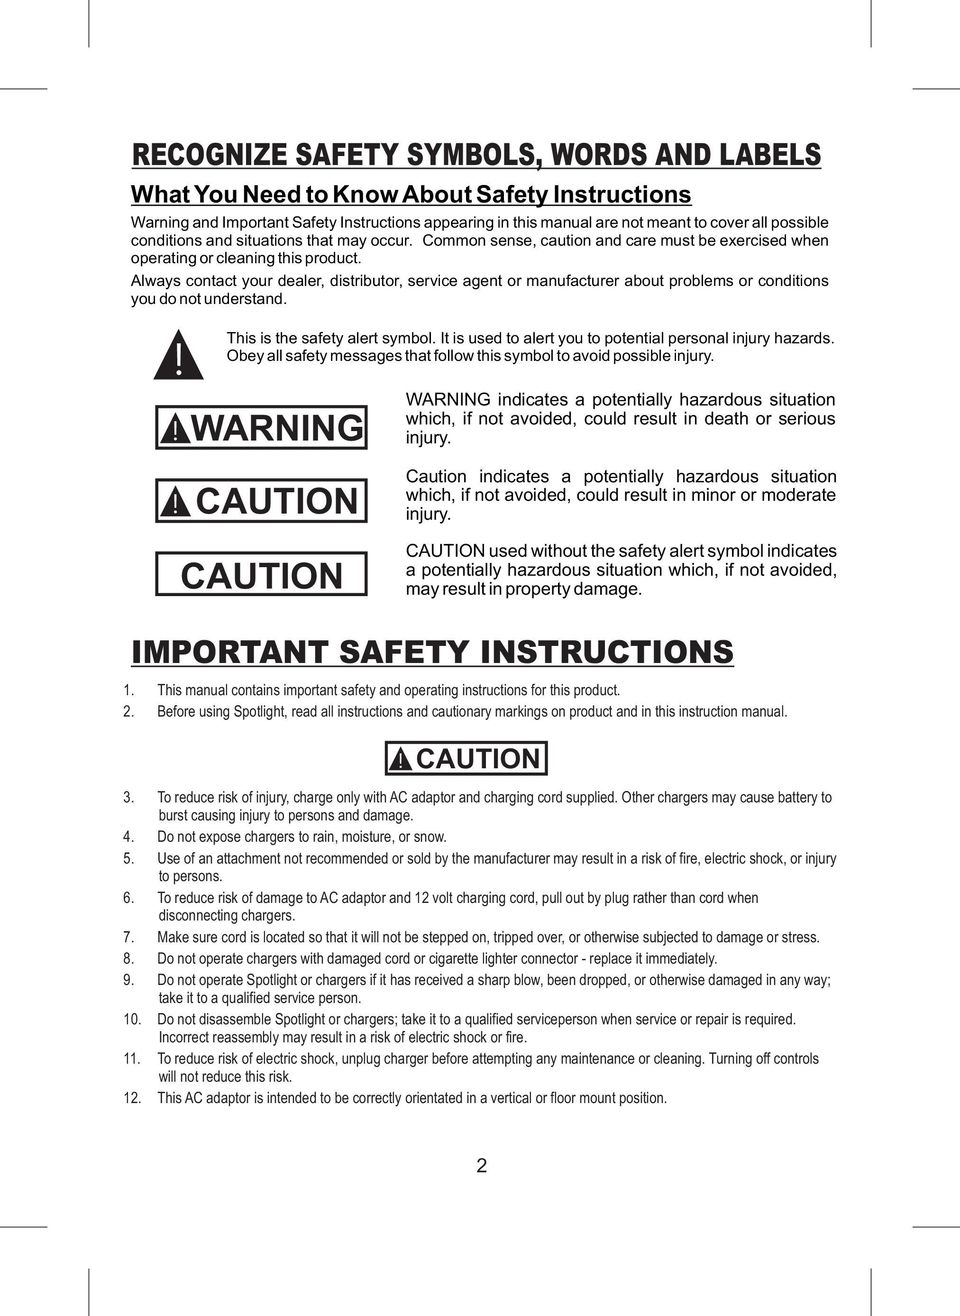 Always contact your dealer, distributor, service agent or manufacturer about problems or conditions you do not understand.!! This is the safety alert symbol.